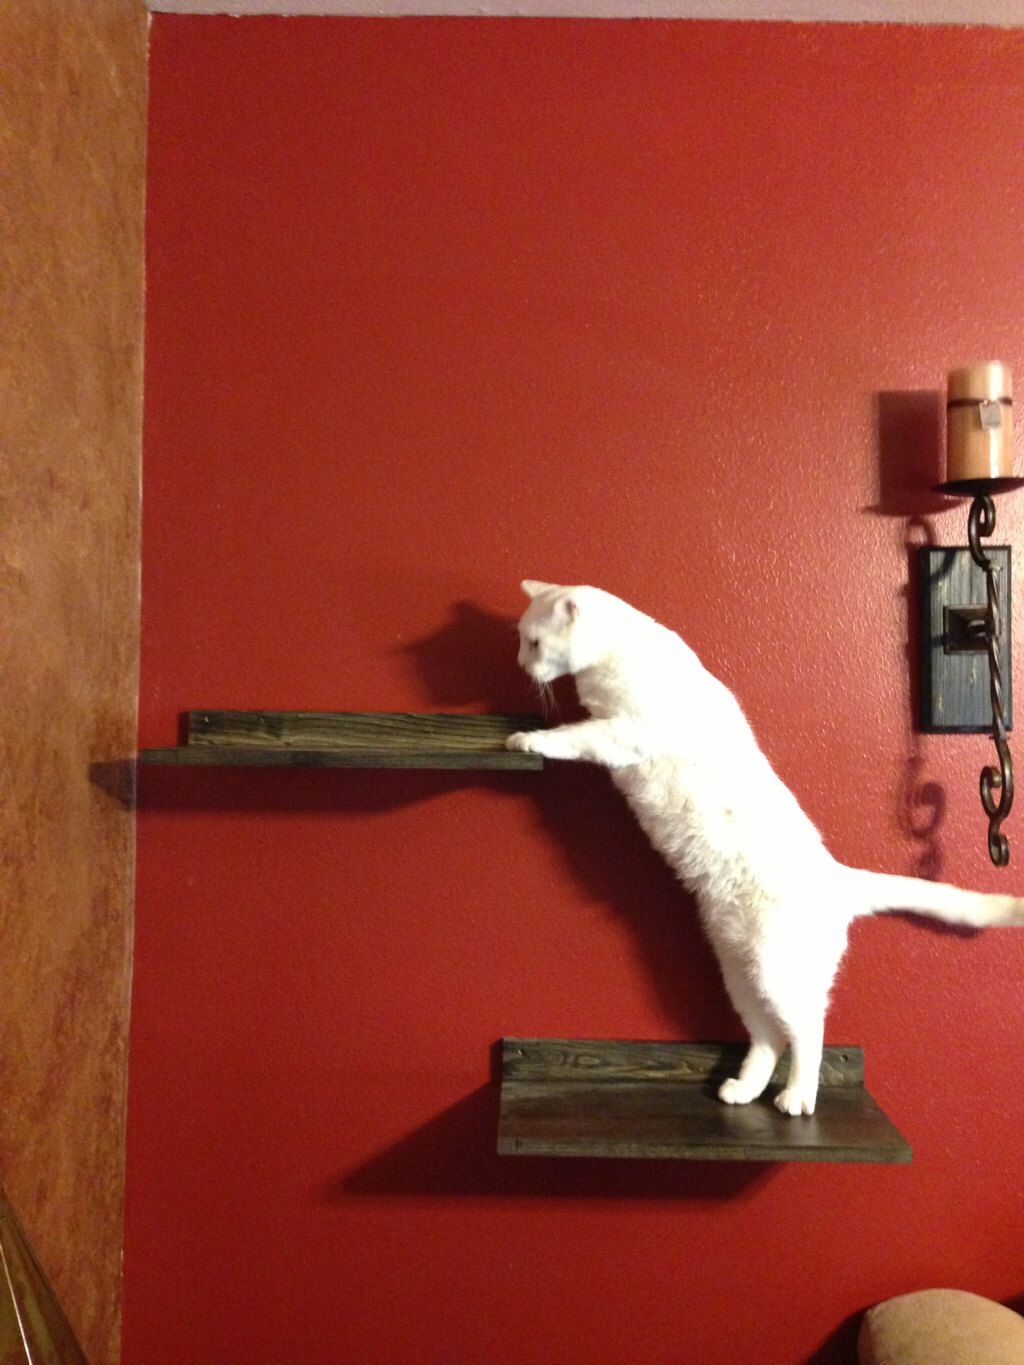 Cat climbing shelf - A perfect perch for your feline friend by JTWoodworks on Etsy https://www.etsy.com/listing/163207017/cat-climbing-shelf-a-perfect-perch-for